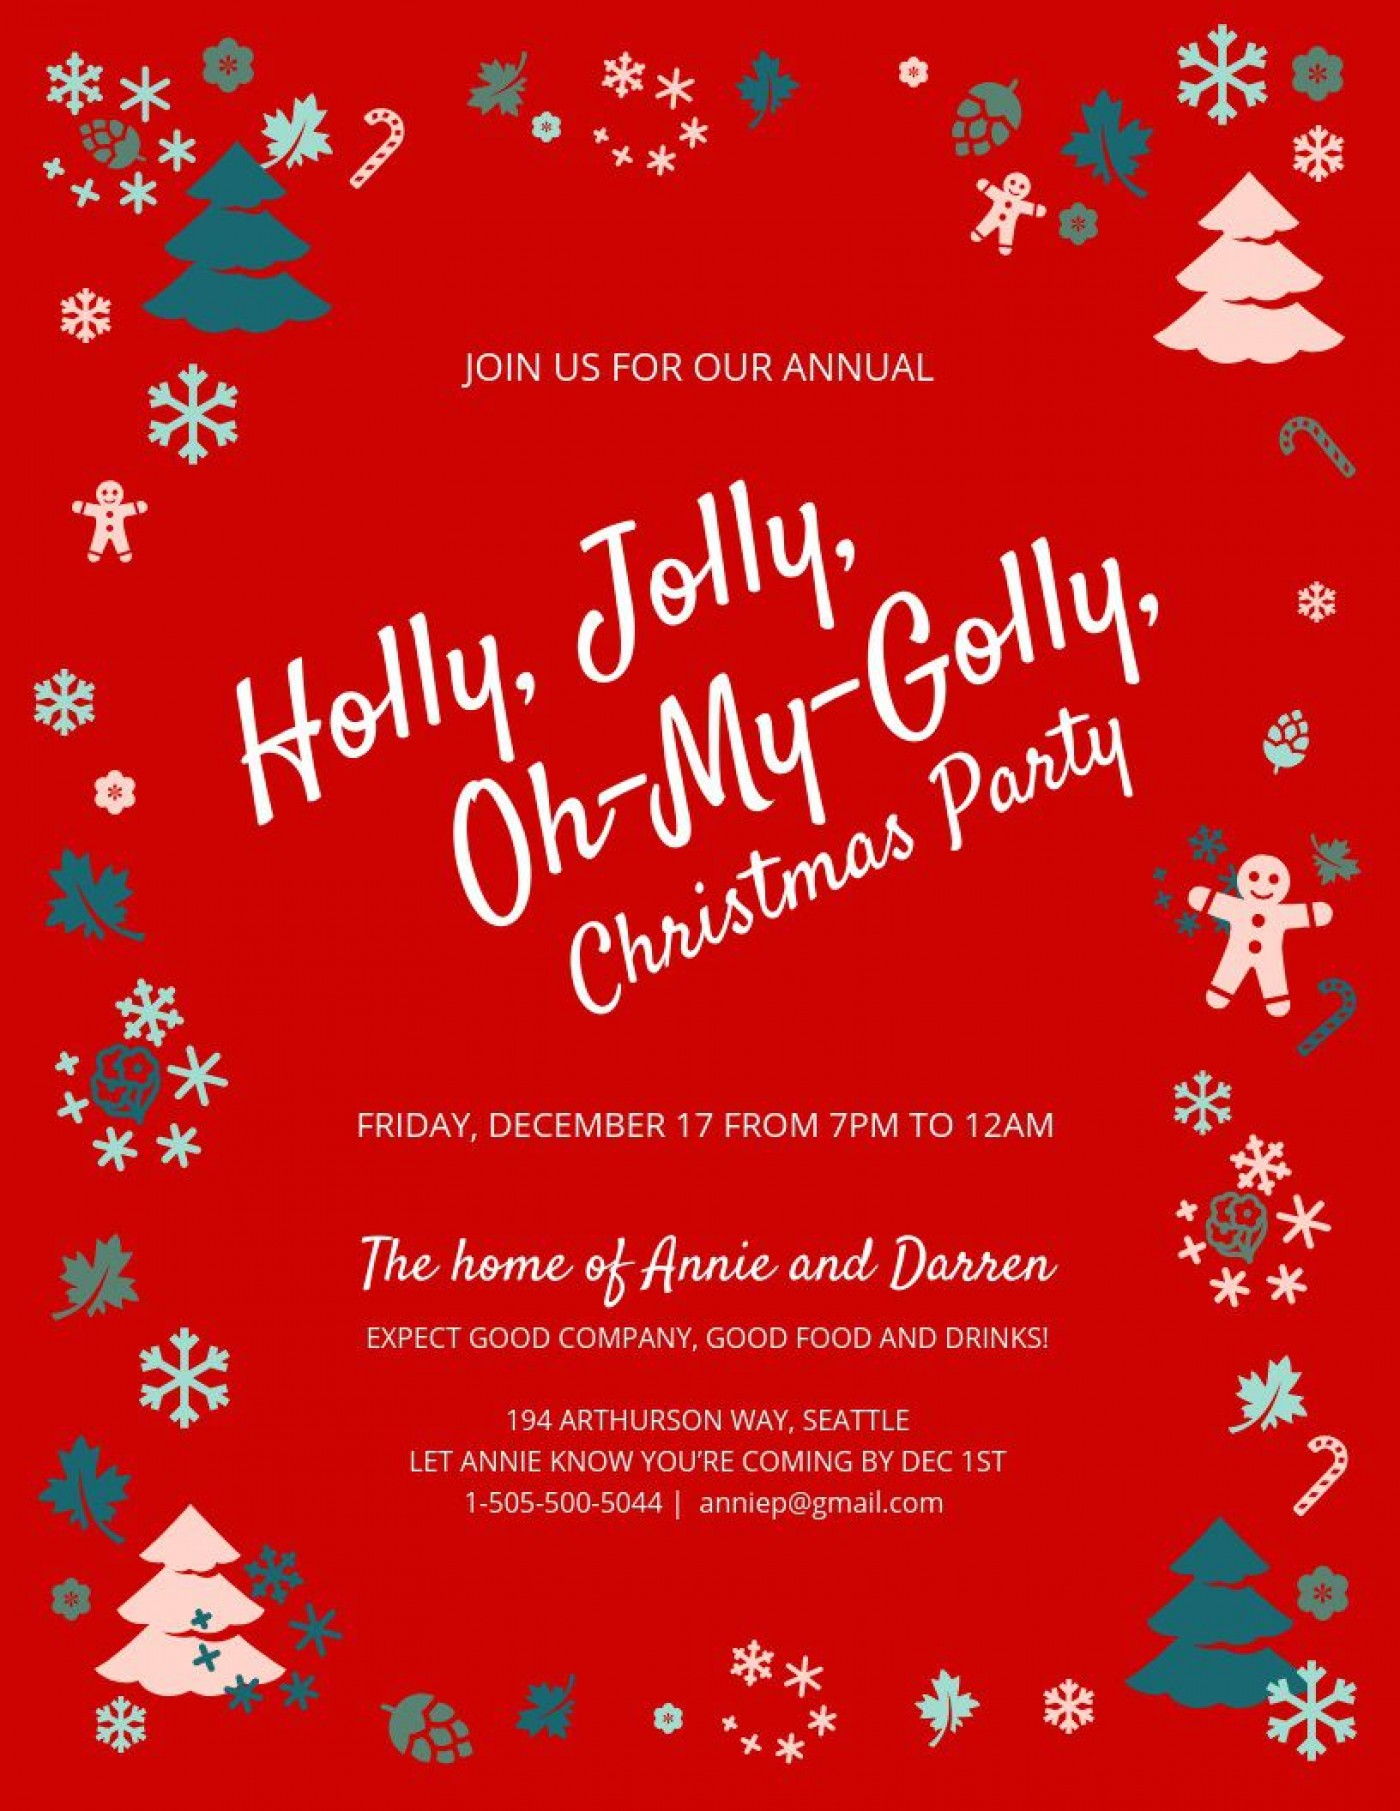 003 Awesome Christma Party Invitation Template Highest Clarity  Holiday Download Free Psd1400